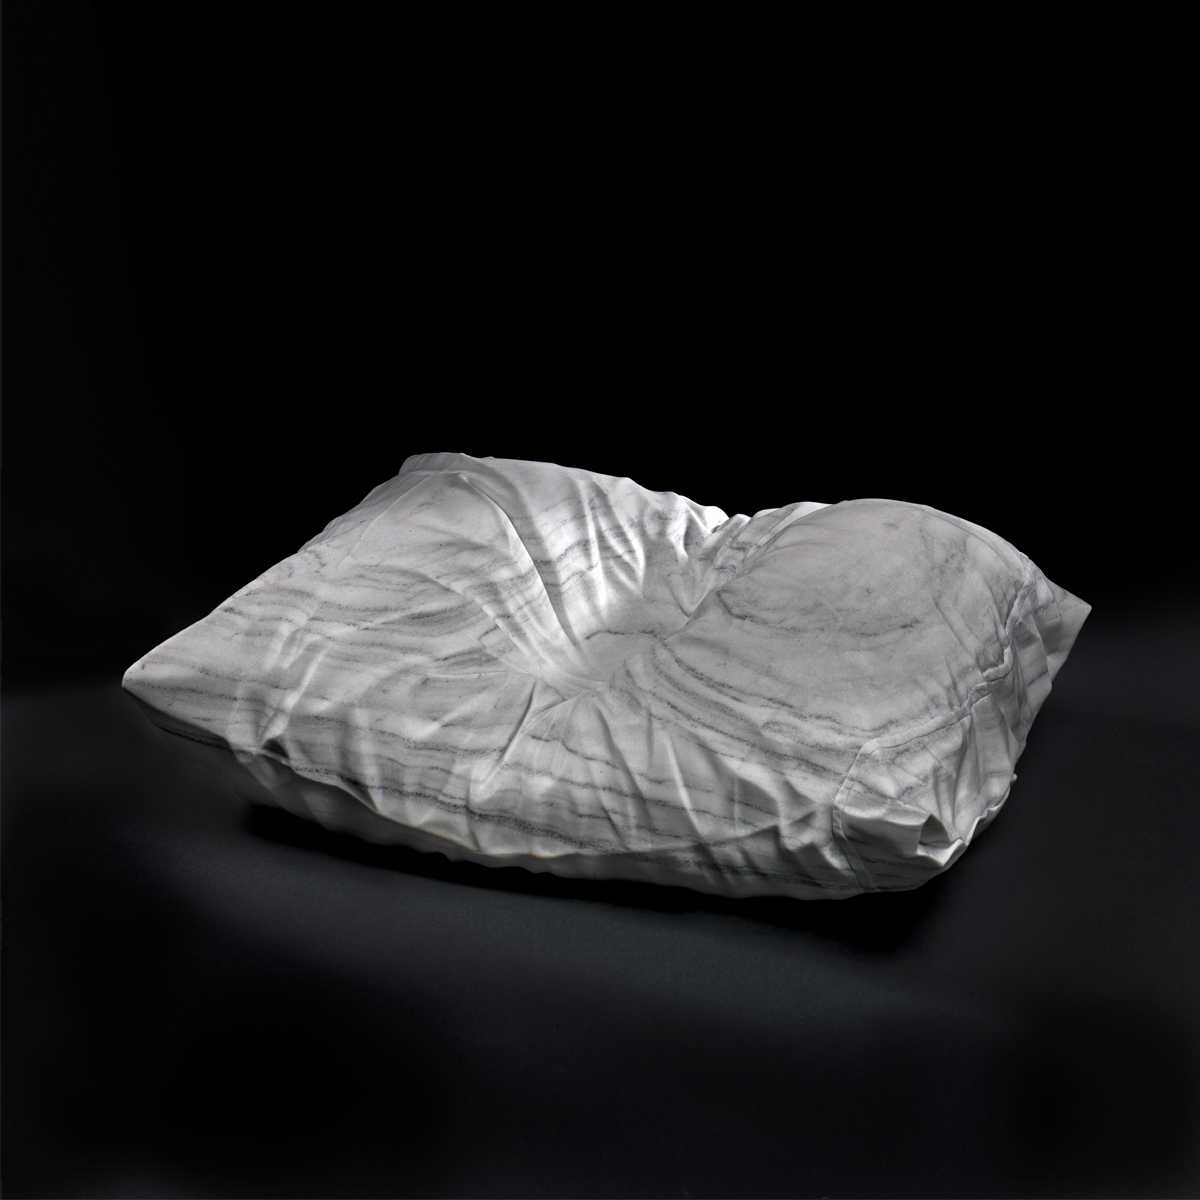 Impressions, marble, 8 x 24 x 18 in, photo courtesy of the Smithsonian American Art Museum